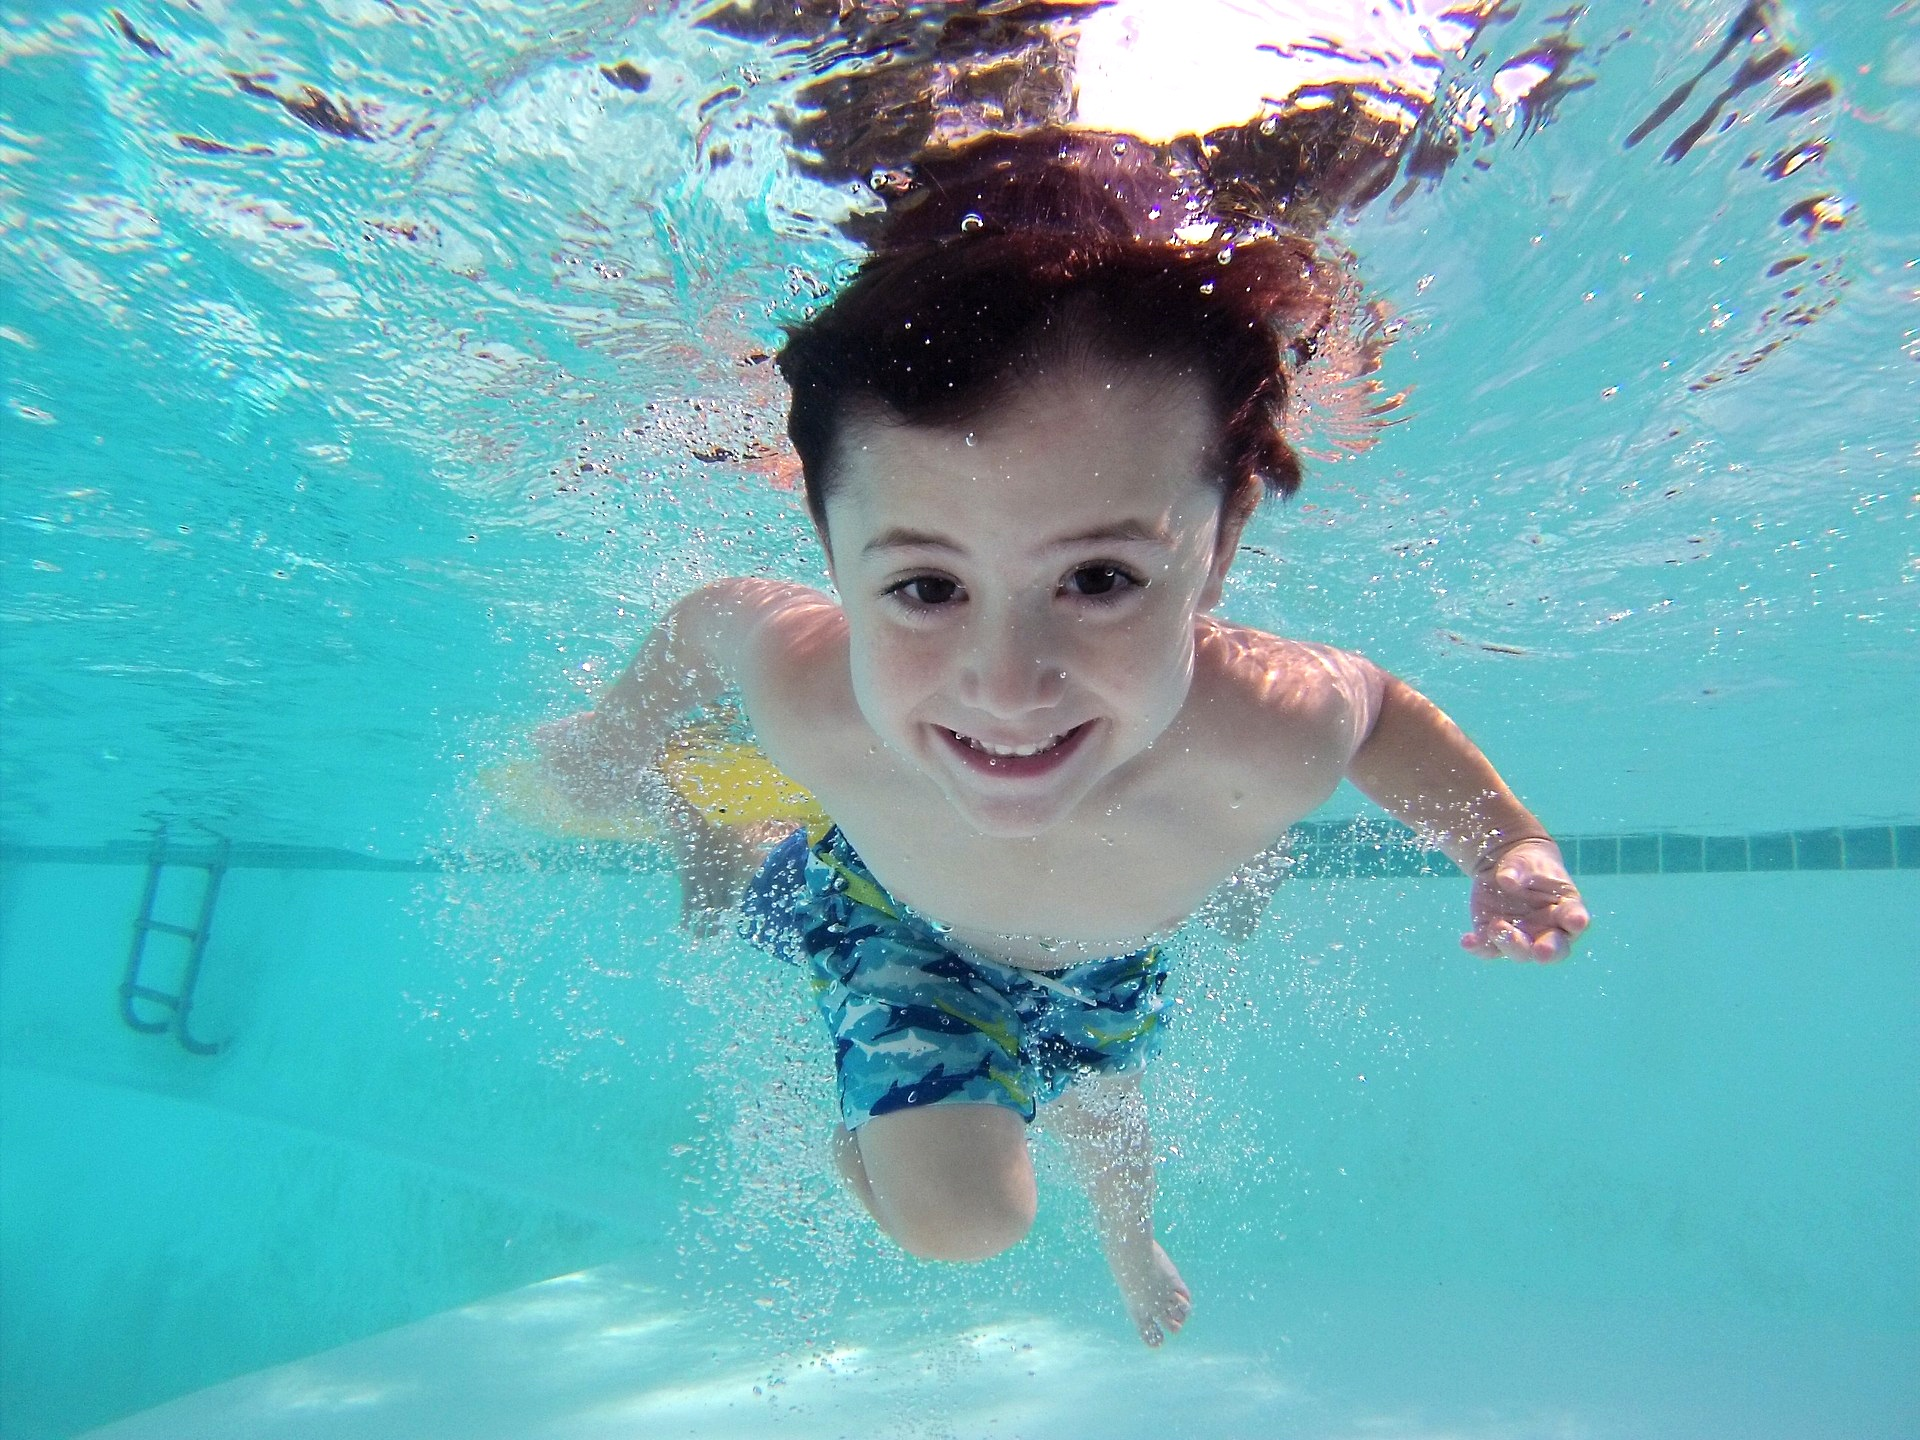 child underwater at swimming pool